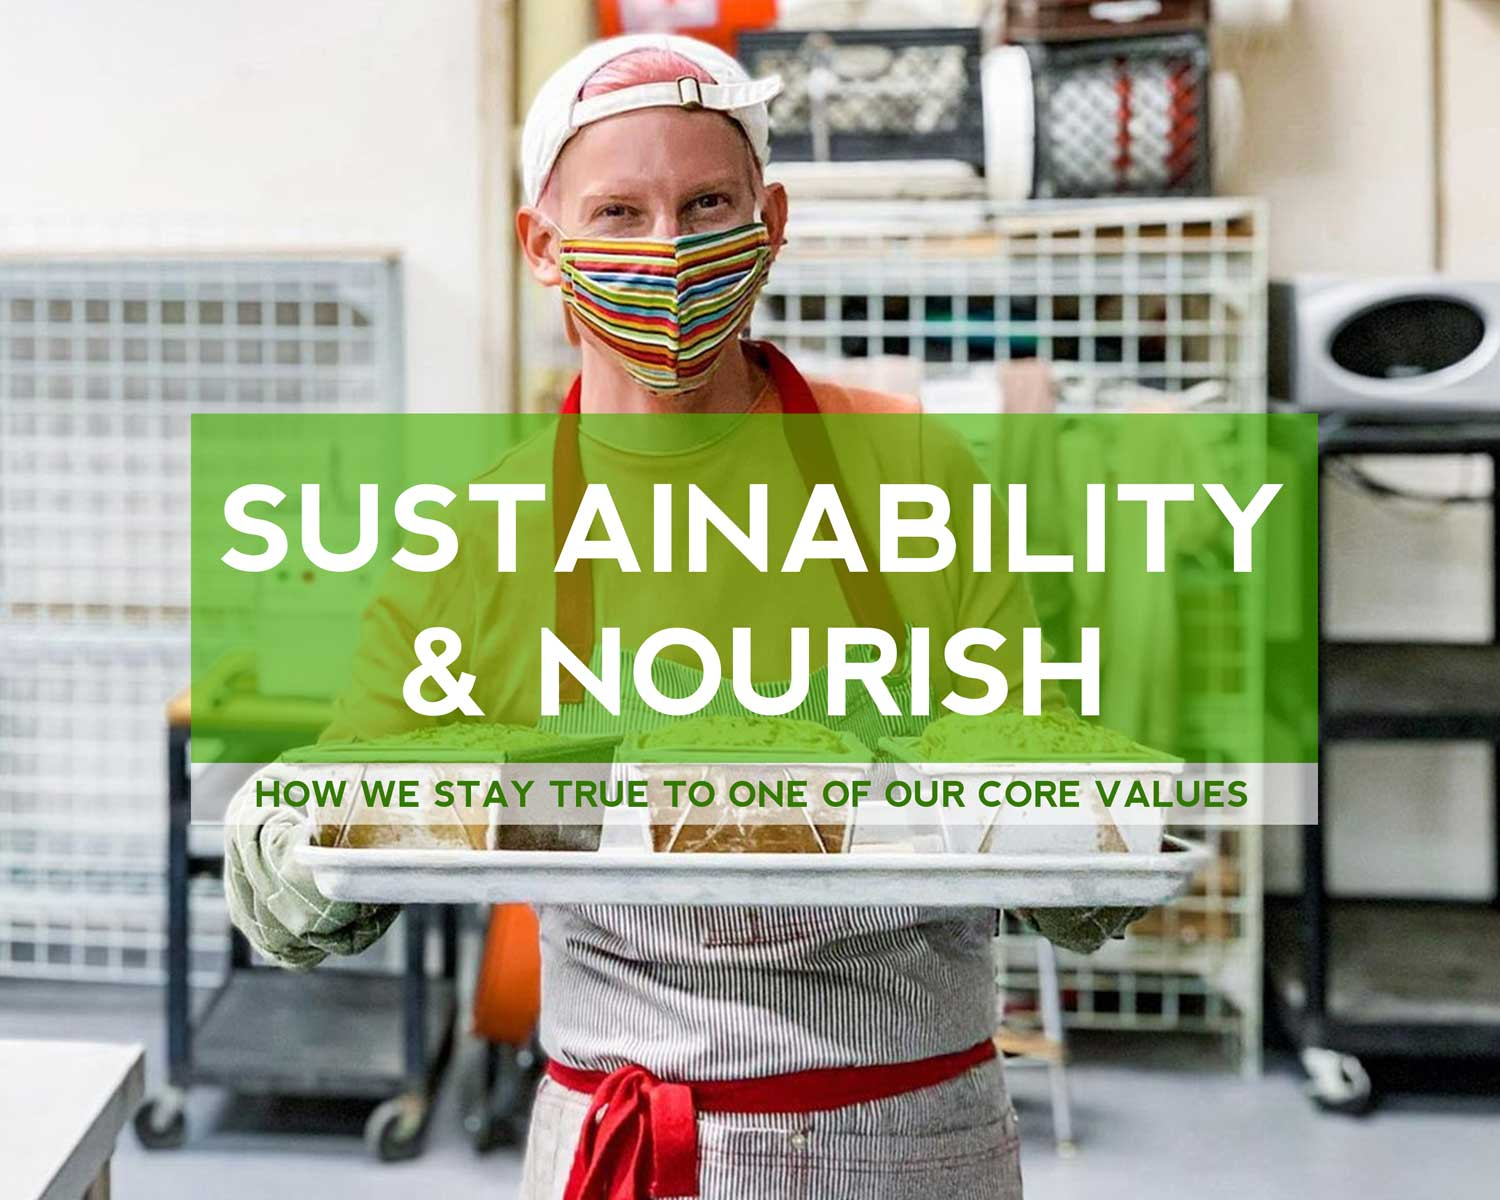 Nourish and Sustainability